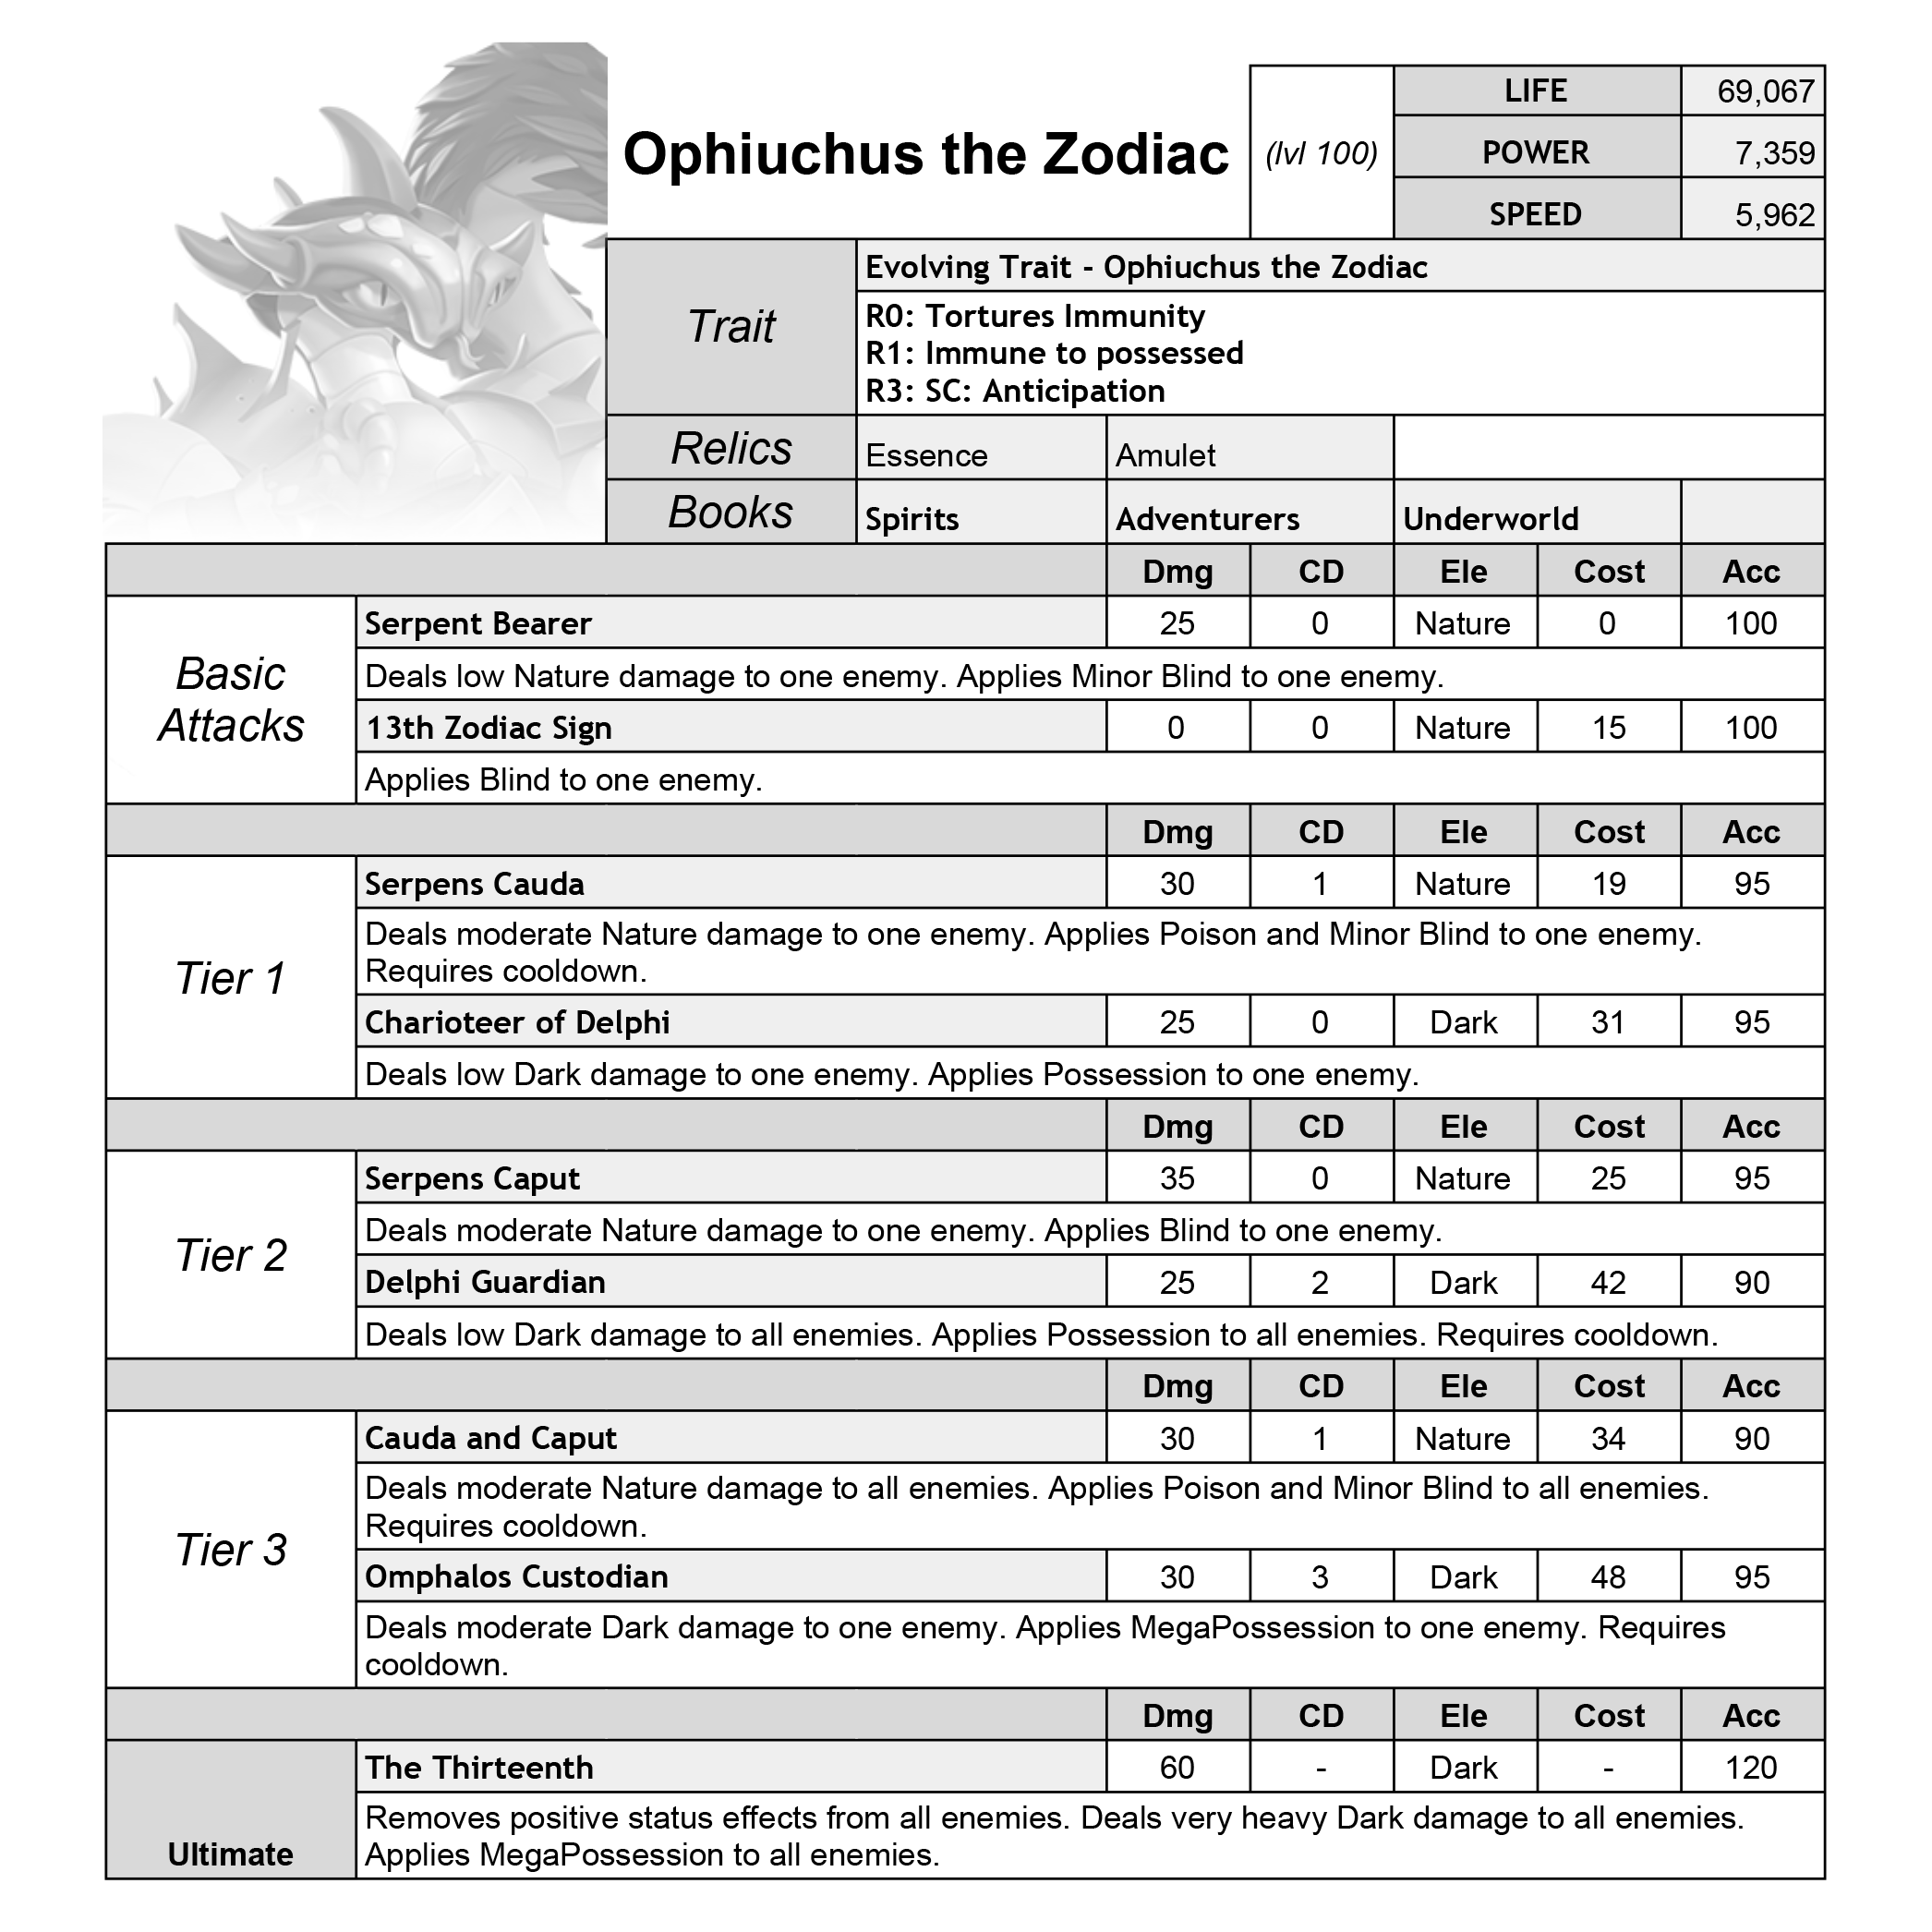 0_1608043587901_Ophiuchus-the-Zodiac-(Quest)--Monster-Shaper-&-Briefing-v3.14.2--ML---SellingPoints.png